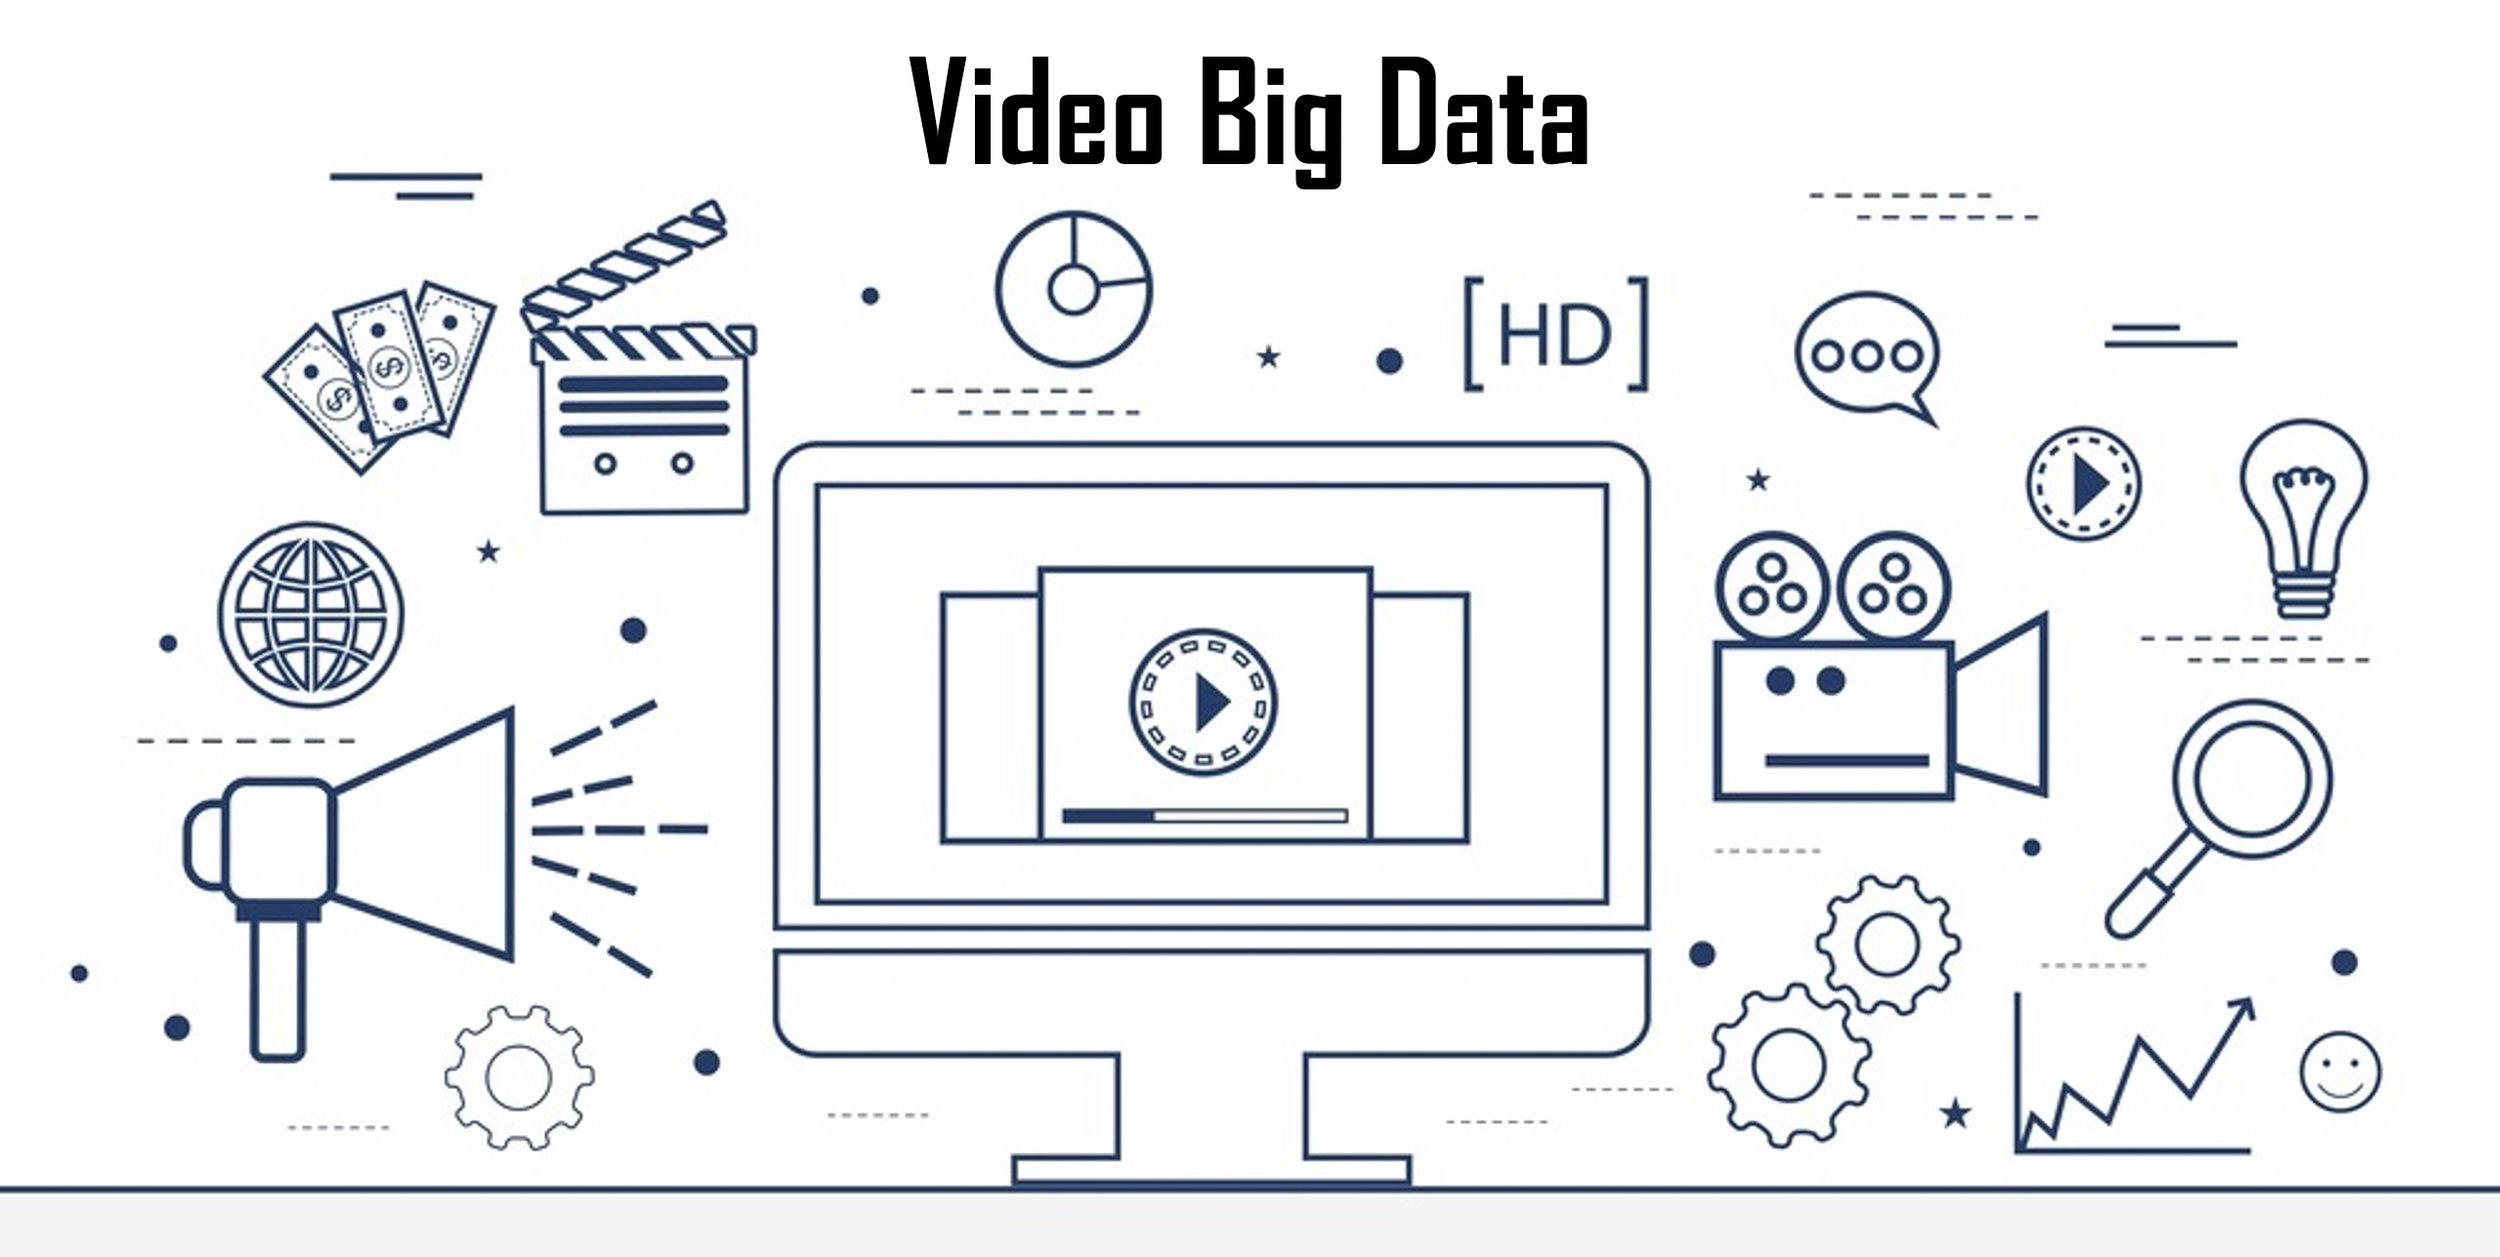 videospace-video-big-data.jpg